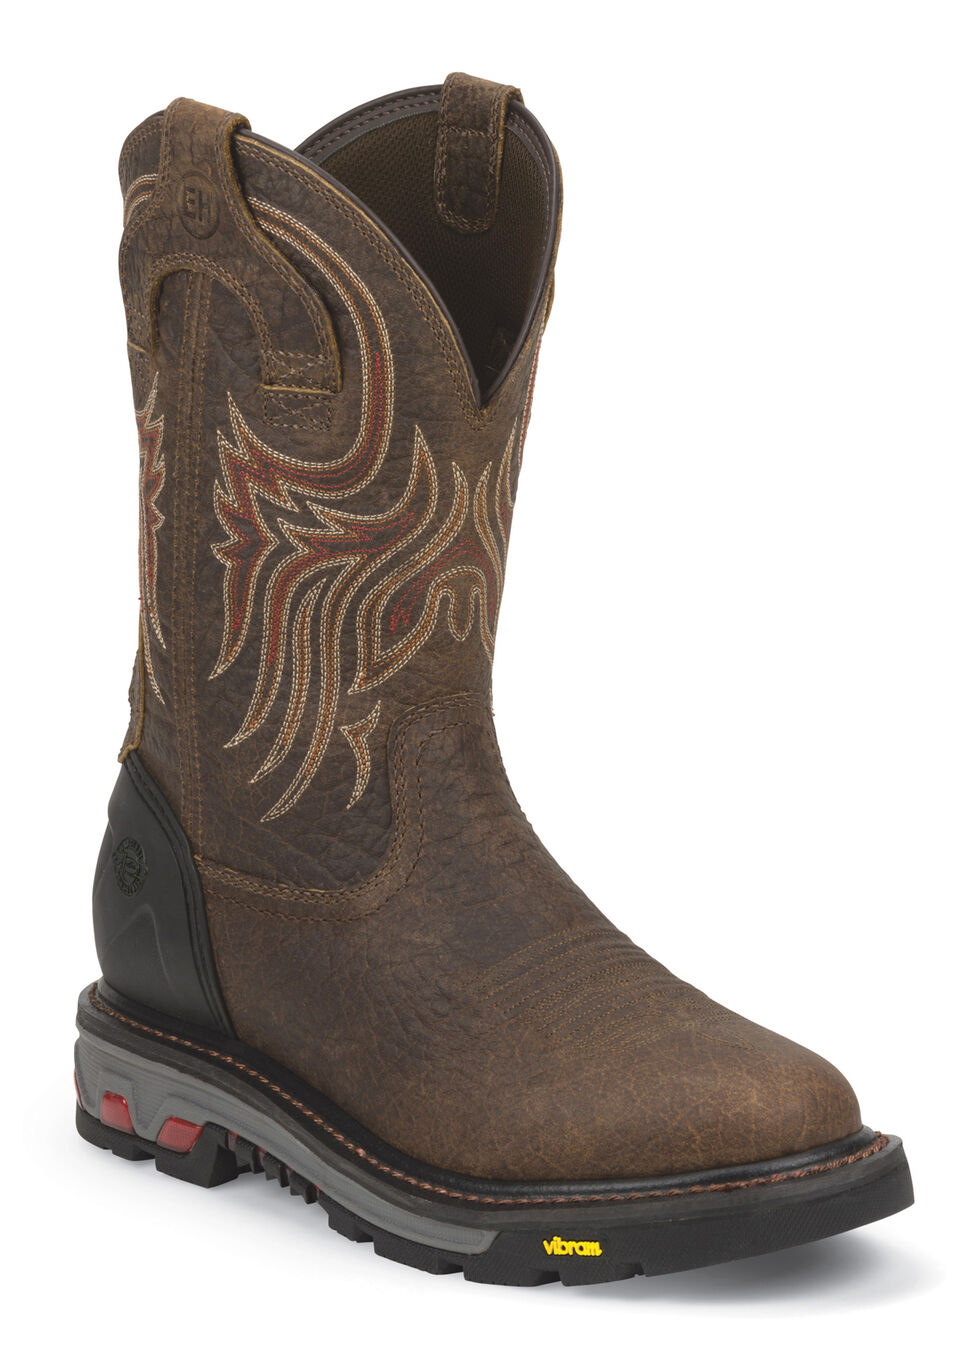 Justin Men's Pumpjack Mahogany Electrical Hazard Work Boots - Soft Toe, Mahogany, hi-res